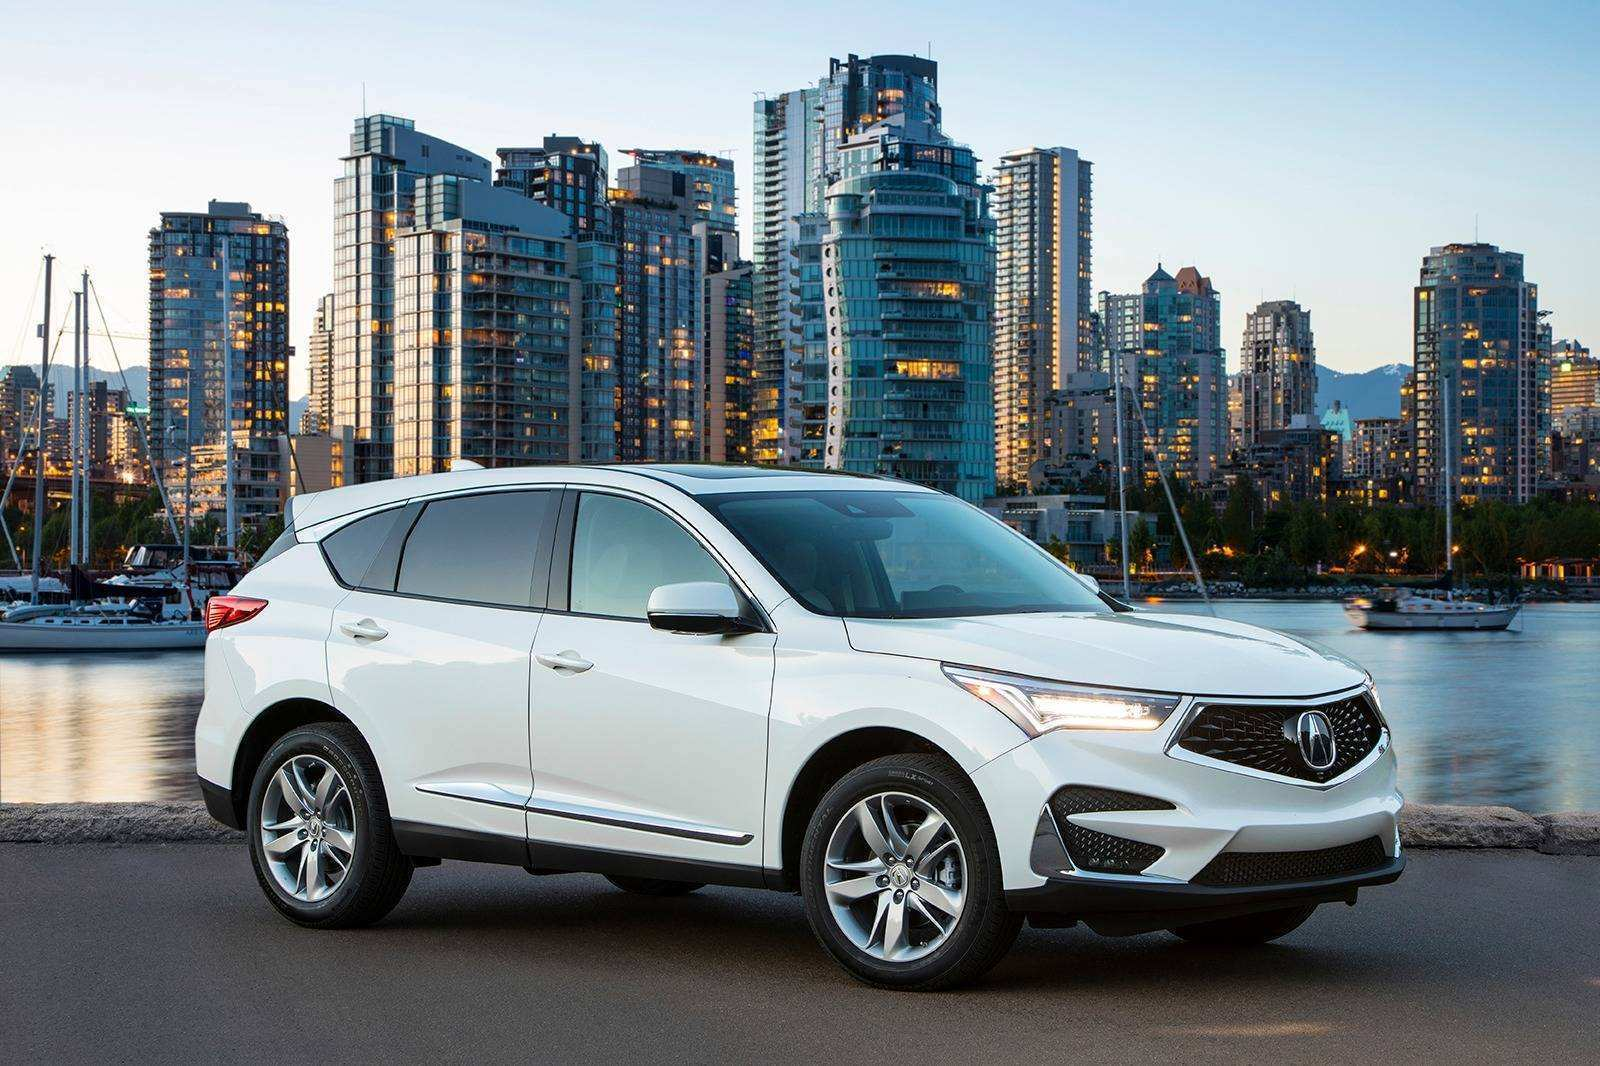 75 The Best Acura Rdx 2019 Gunmetal Review And Price Research New by Best Acura Rdx 2019 Gunmetal Review And Price